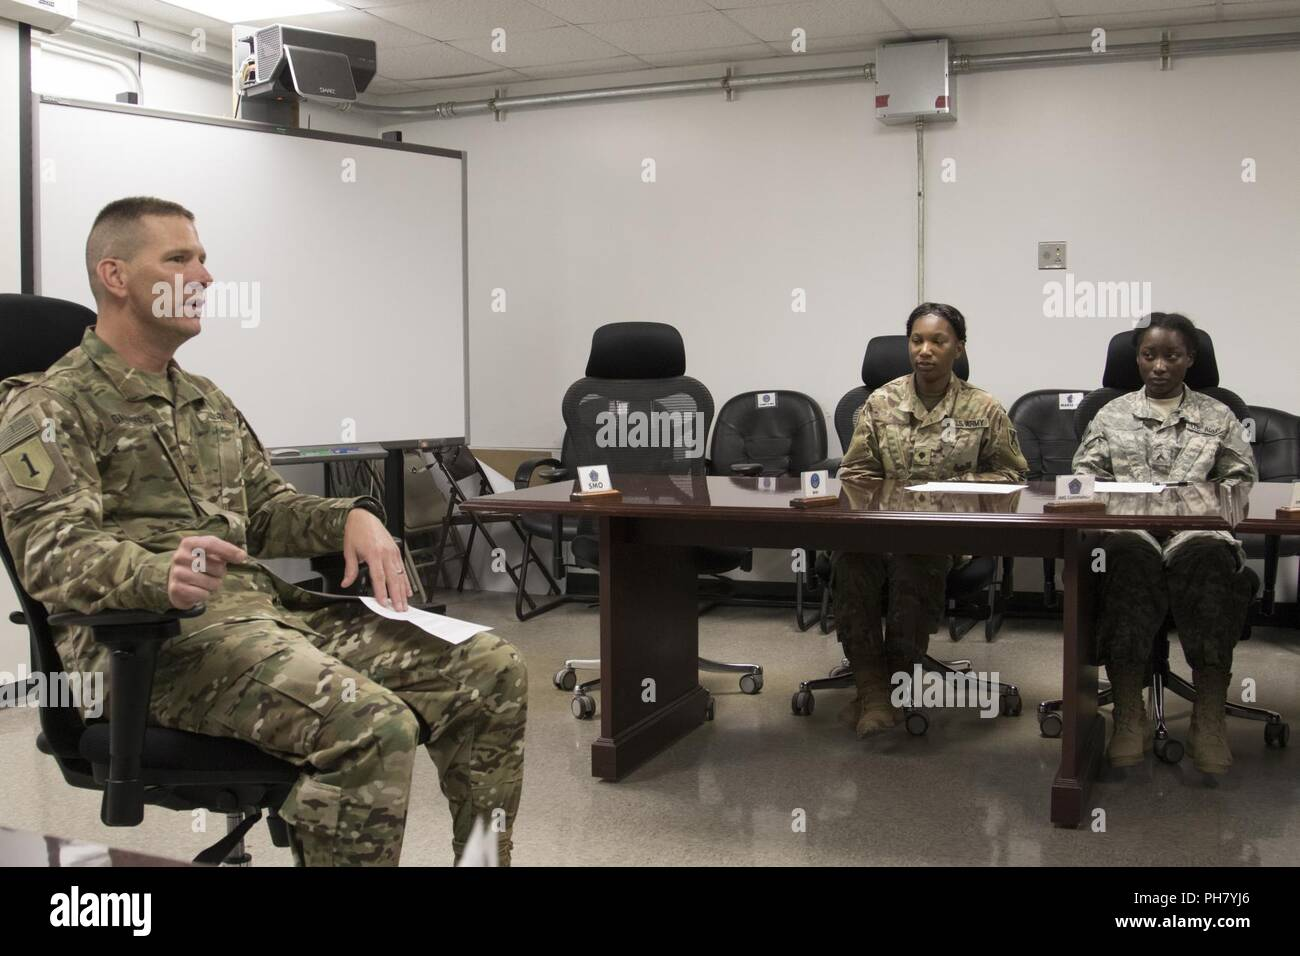 Joint Detention Group Commander Stock Photos Amp Joint Detention Group Commander Stock Images